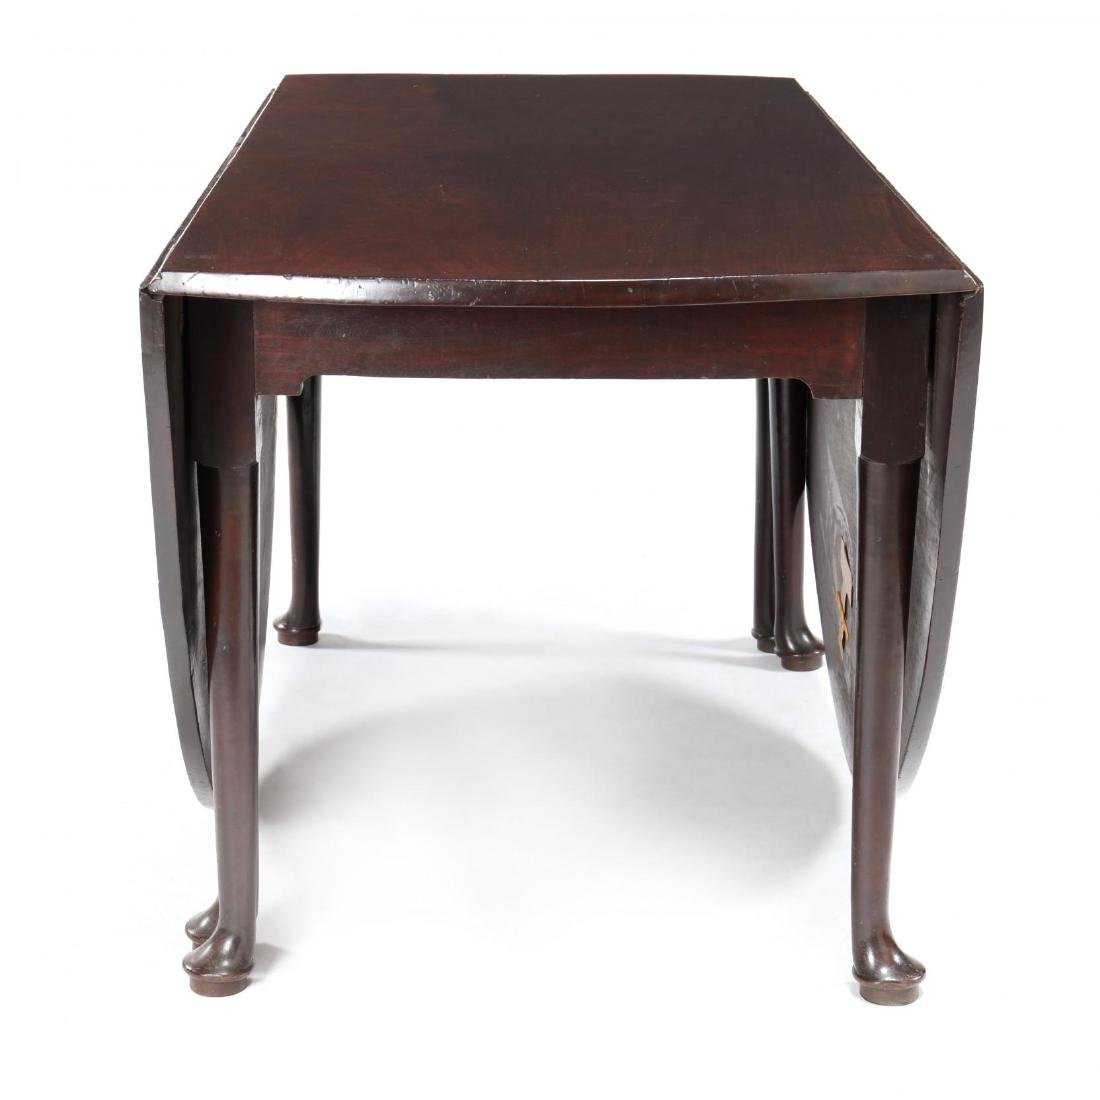 George II Mahogany Drop Leaf Dining Table - 7